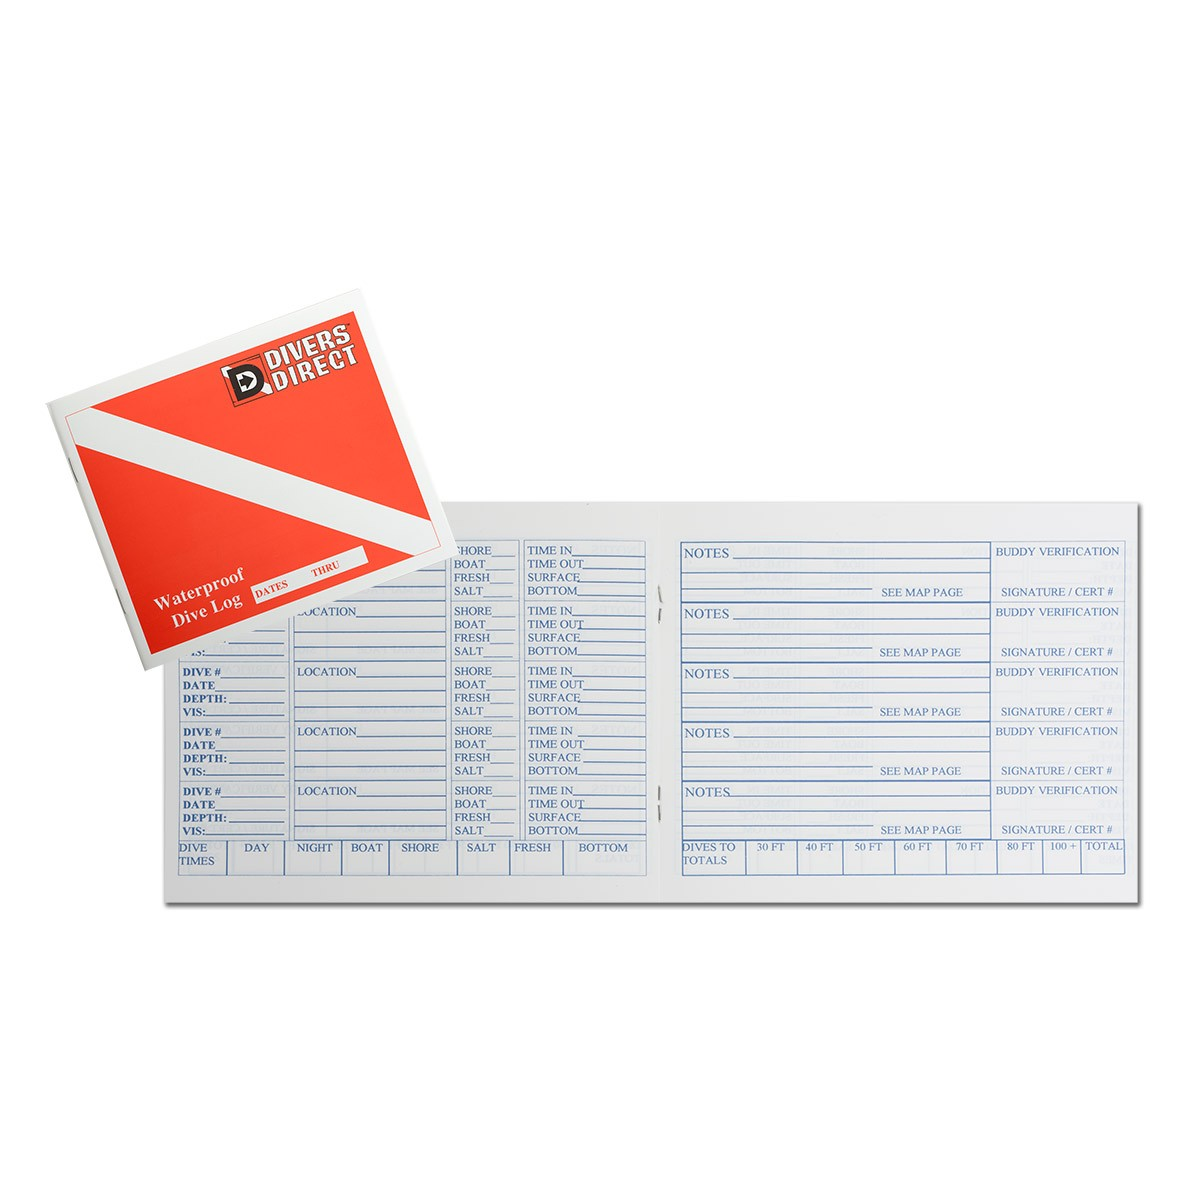 Waterproof dive log book divers direct - Dive log book ...